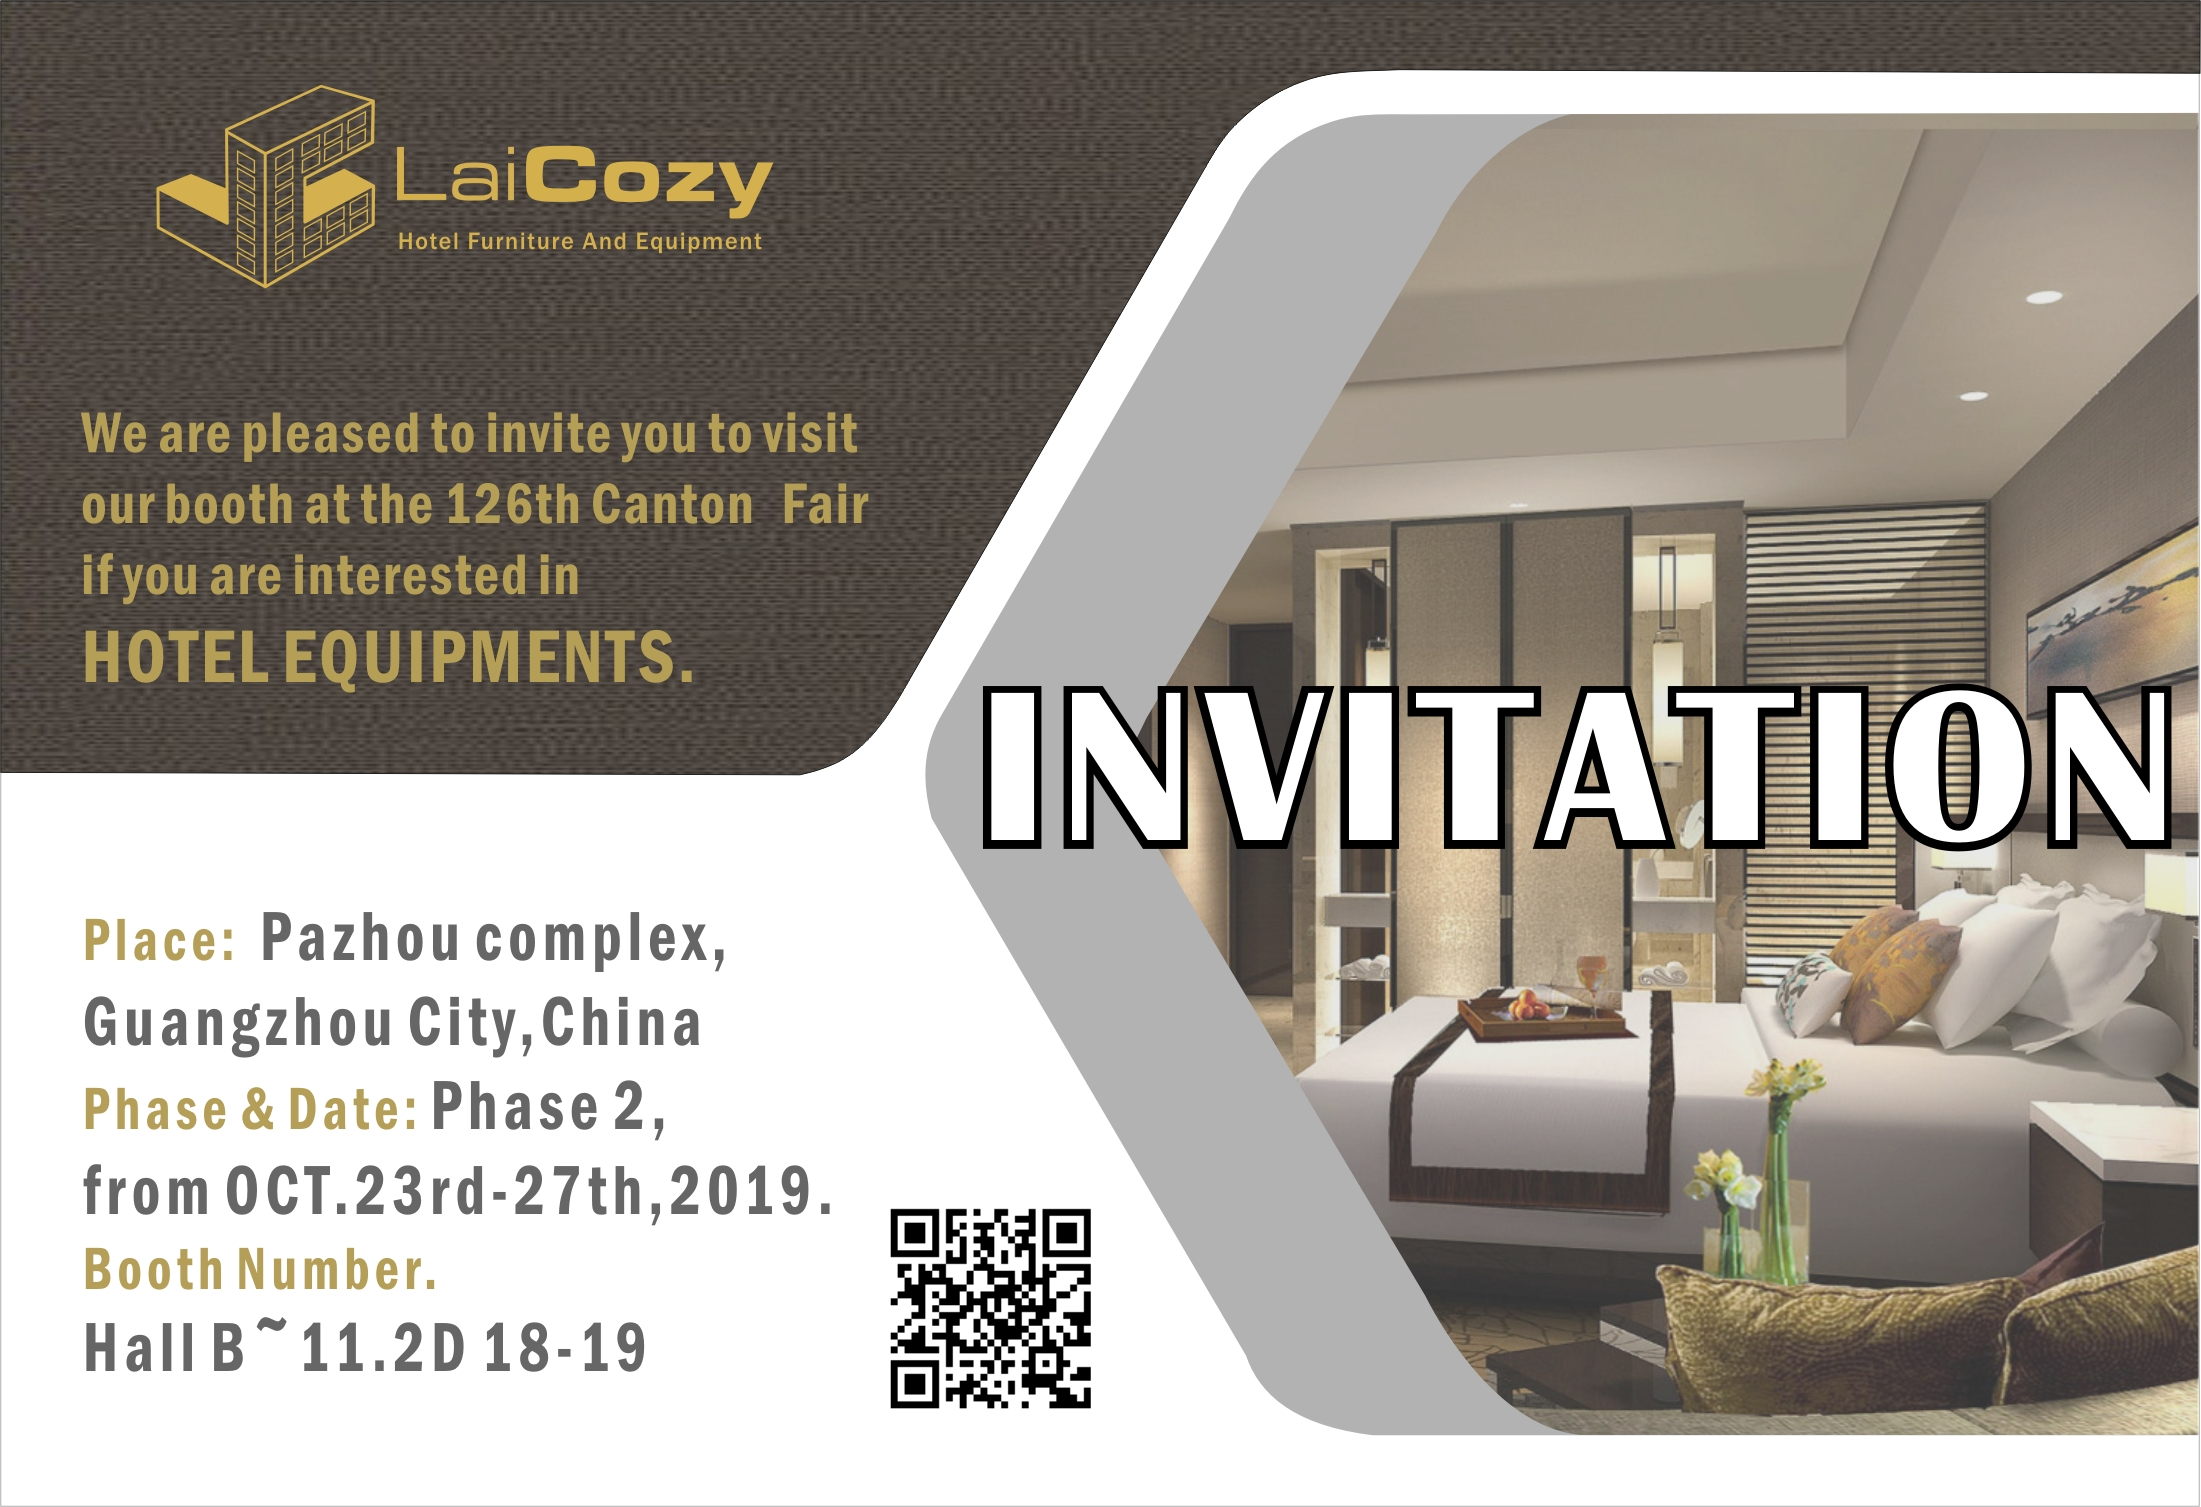 The 126th Canton fair from Oct 23-27 (Laicozy hotel items booth NO: 11.2D18-19)